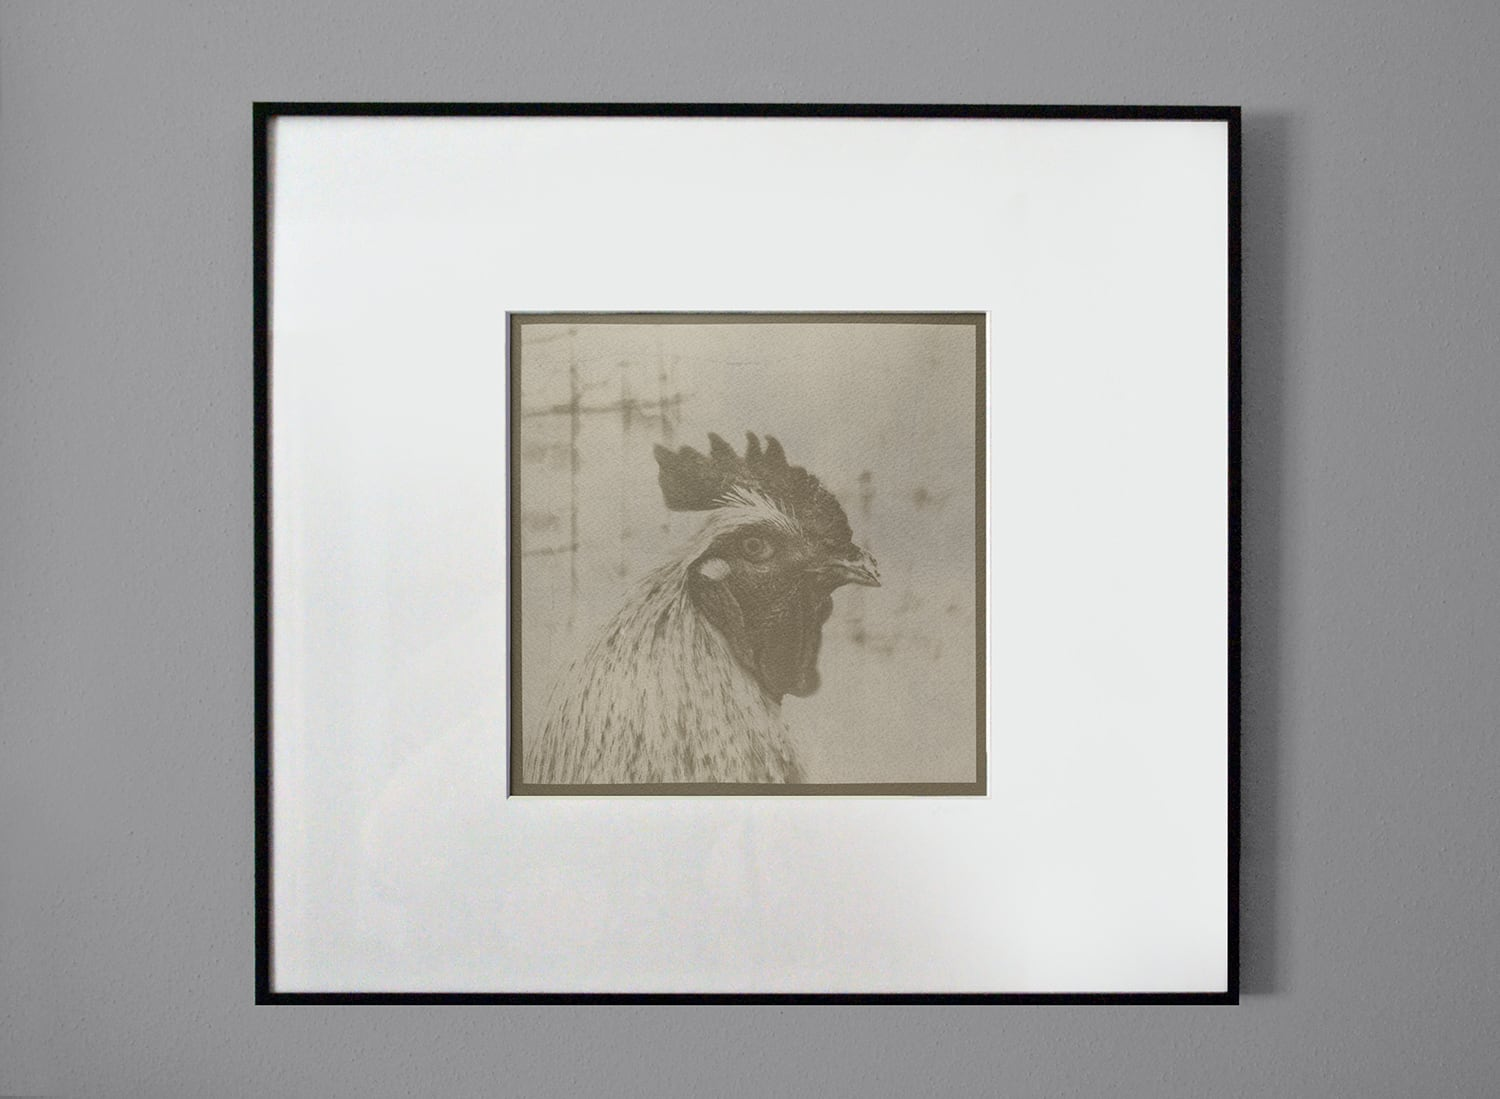 Coffee-toned rooster cyanotype print after being matted and framed